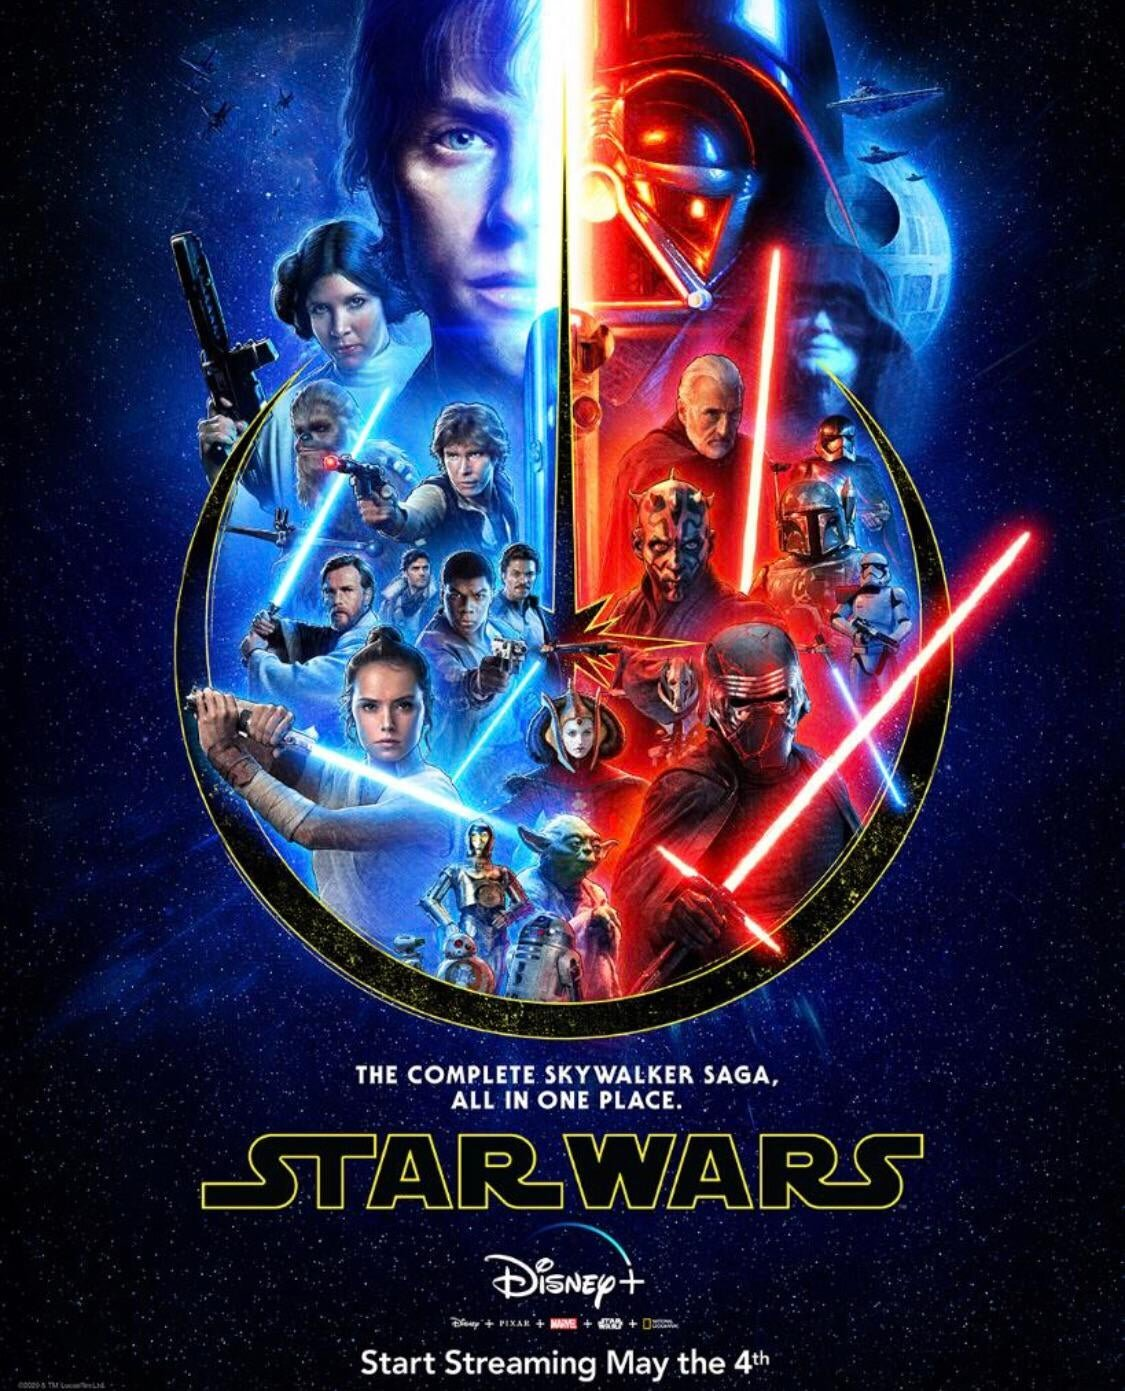 New Star Wars Poster For The Skywalker Saga And Disney Shares Concept Art For Its May The 4th Takeover Geektyrant